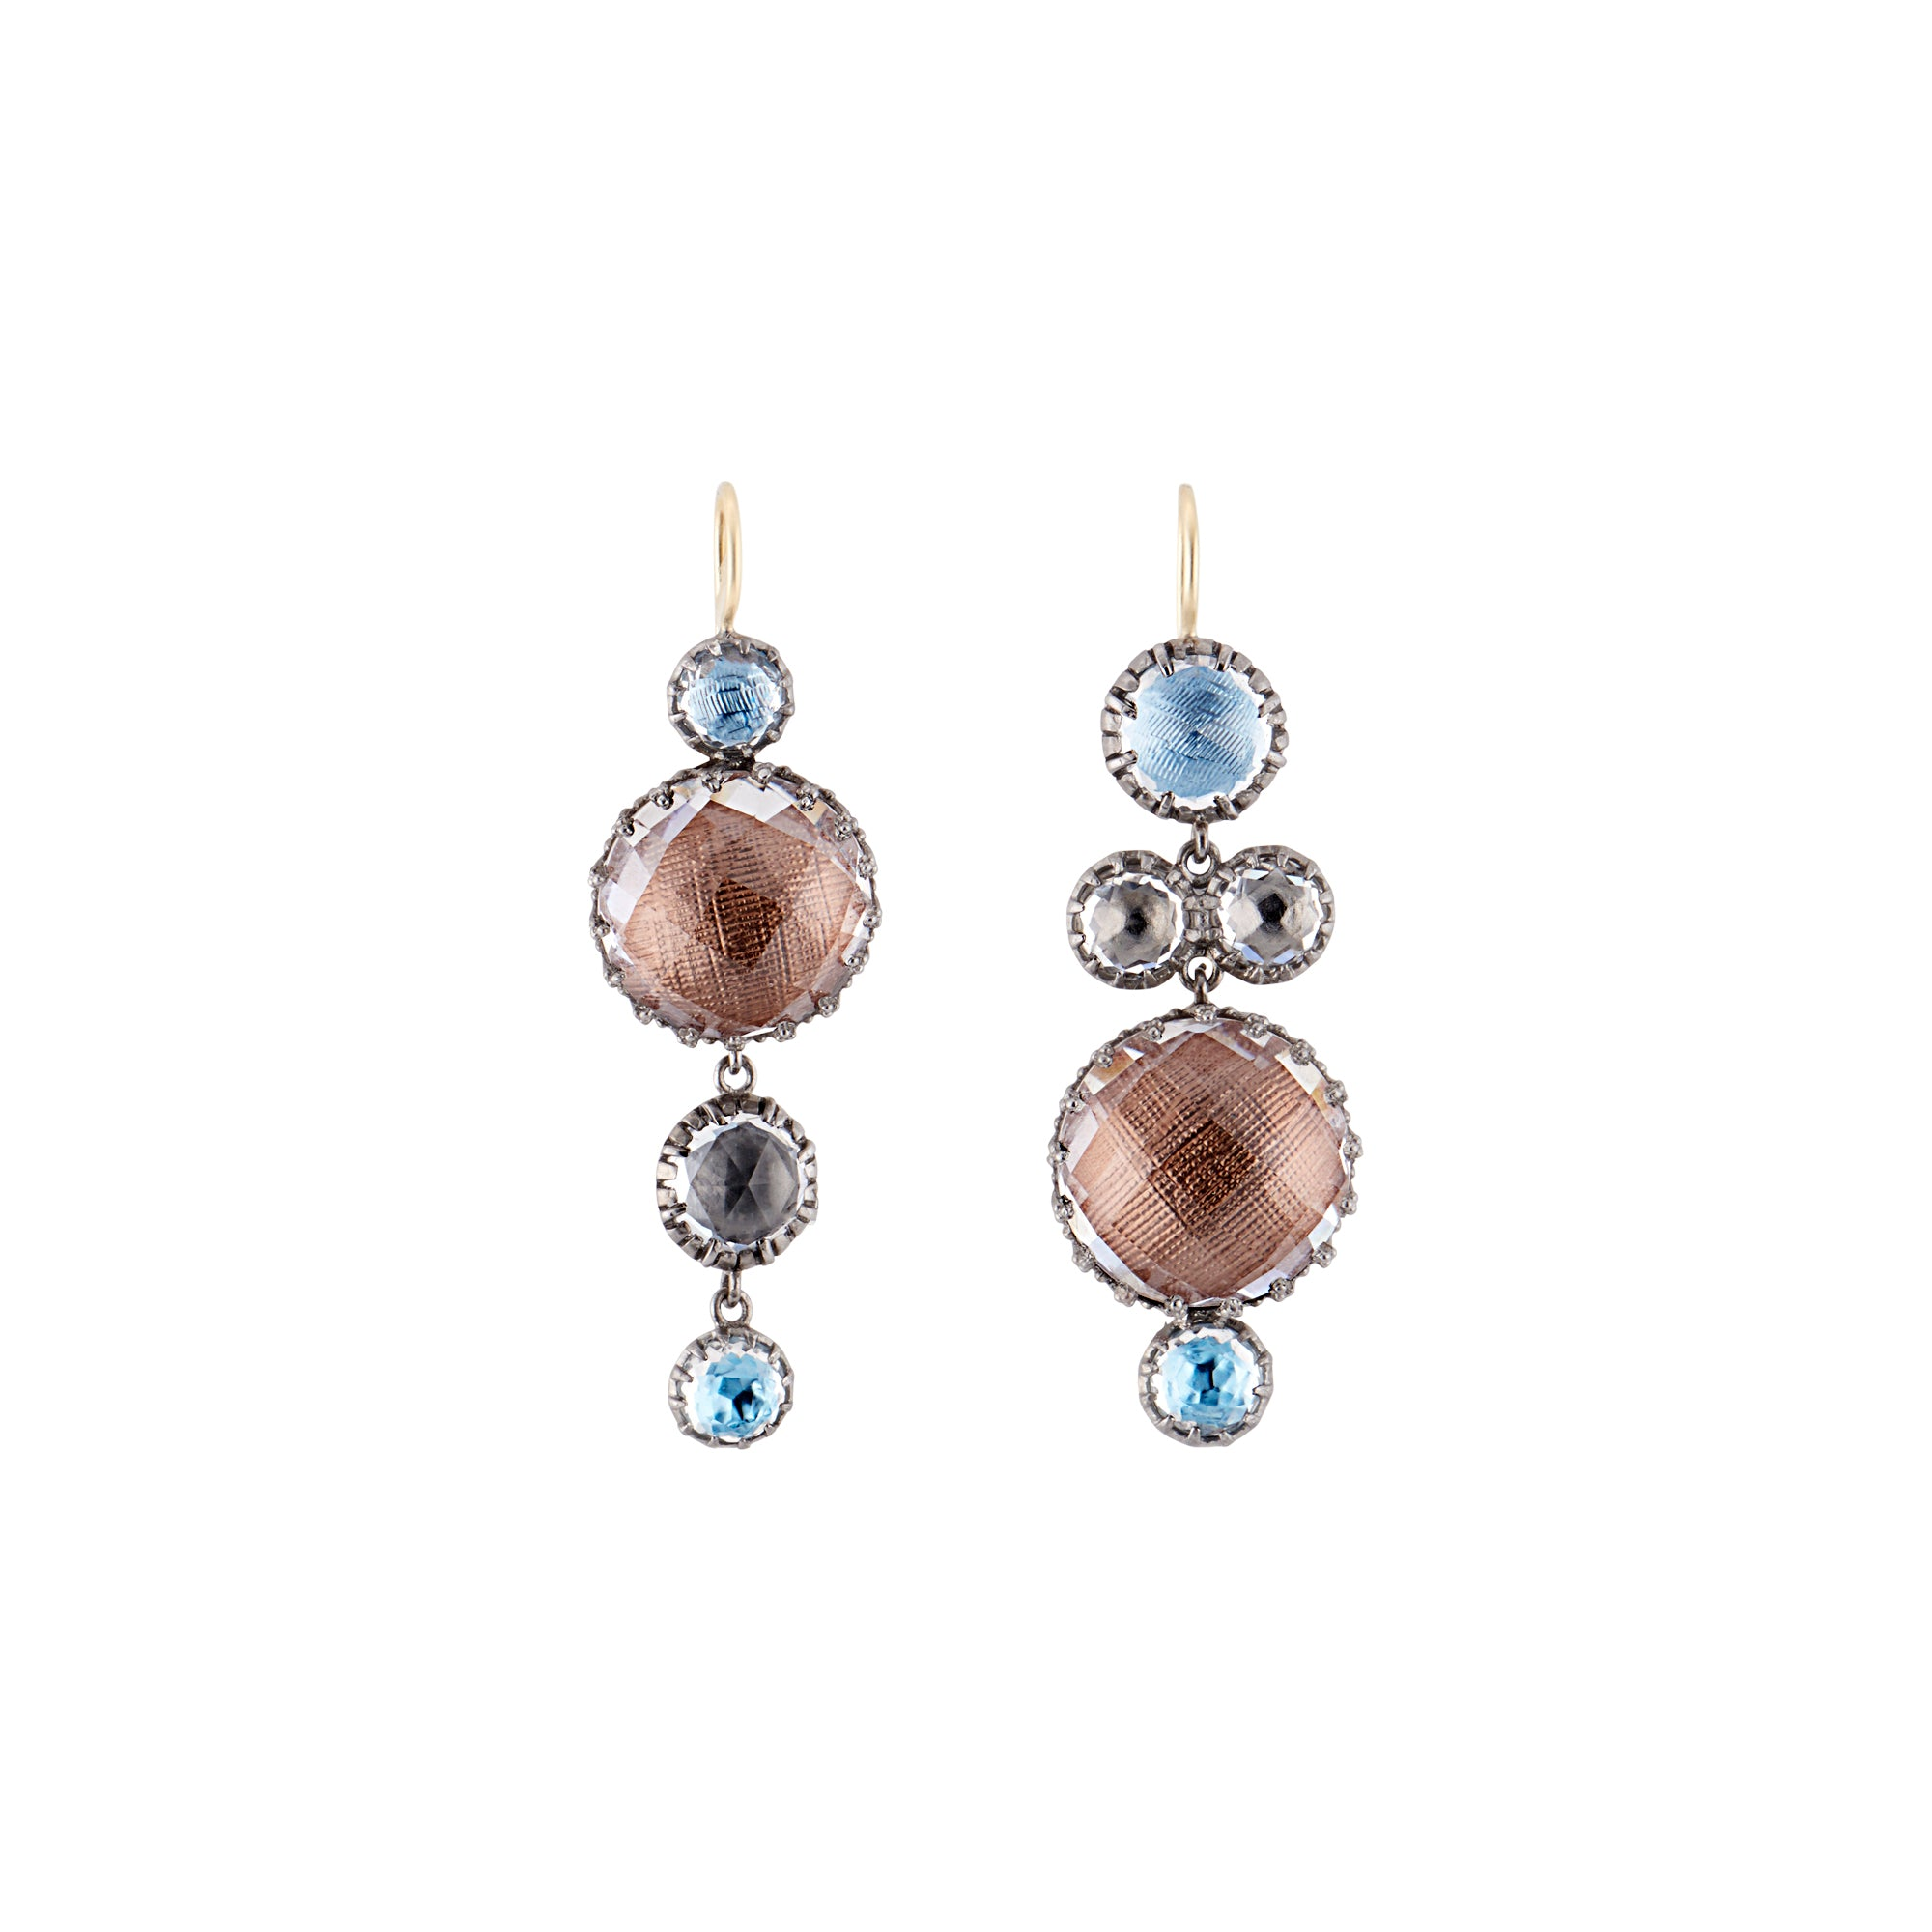 Sadie Mis-Matched Bubble 4-Drop Earrings by Larkspur & Hawk for Broken English Jewelry